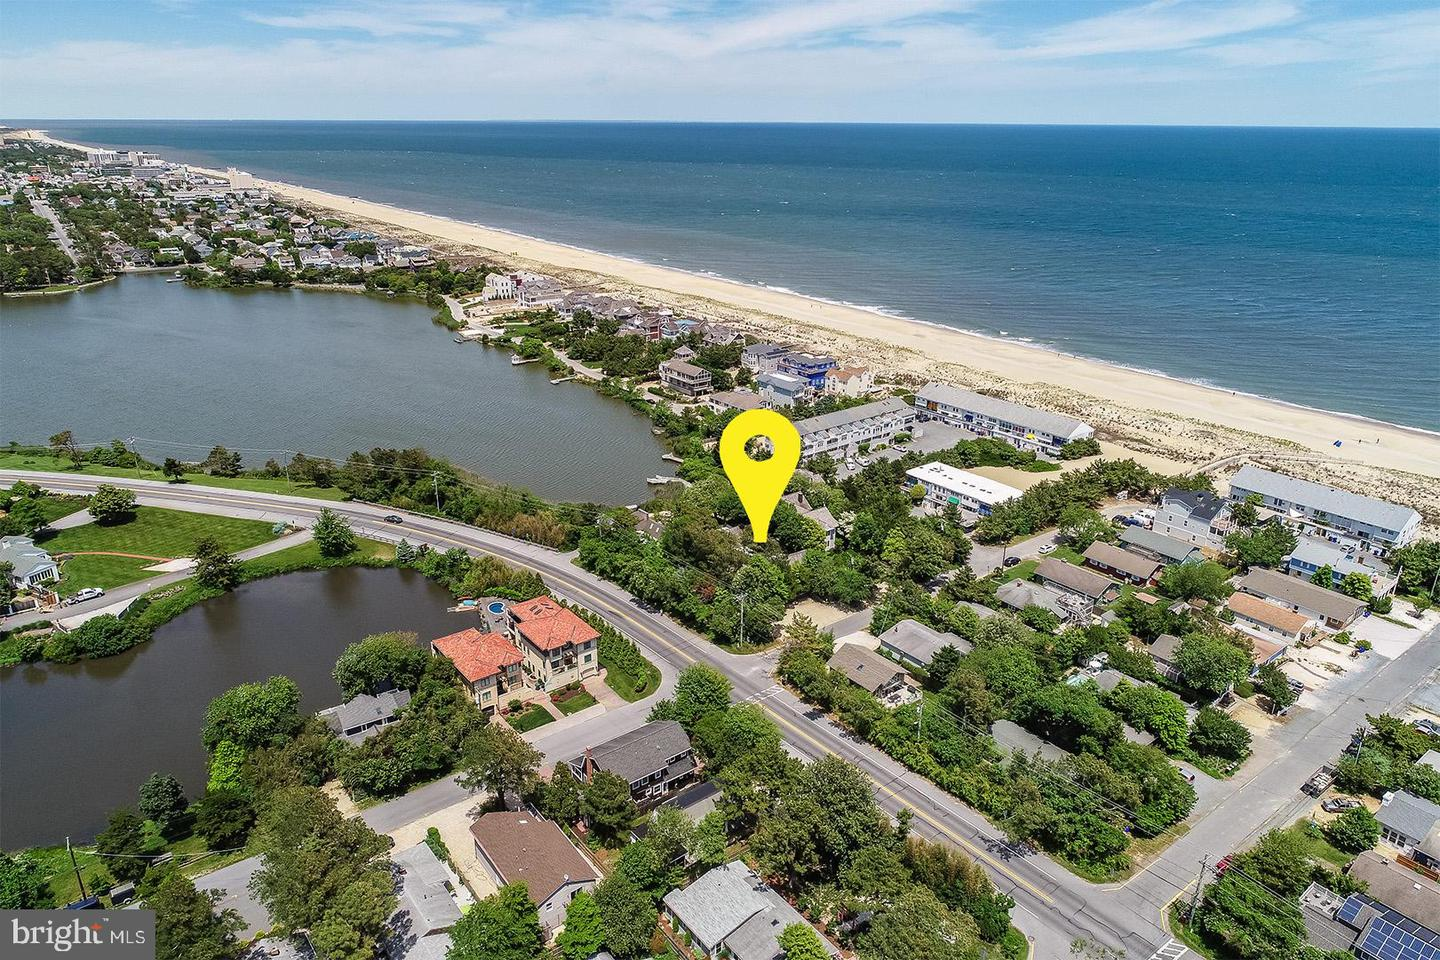 1001571252-300419449513-2019-06-12-11-58-34 Homes for Sale in Rehoboth by the Sea - Rehoboth Beach Real Estate - Bryce Lingo and Shaun Tull REALTORS, Rehoboth Beach, Delaware